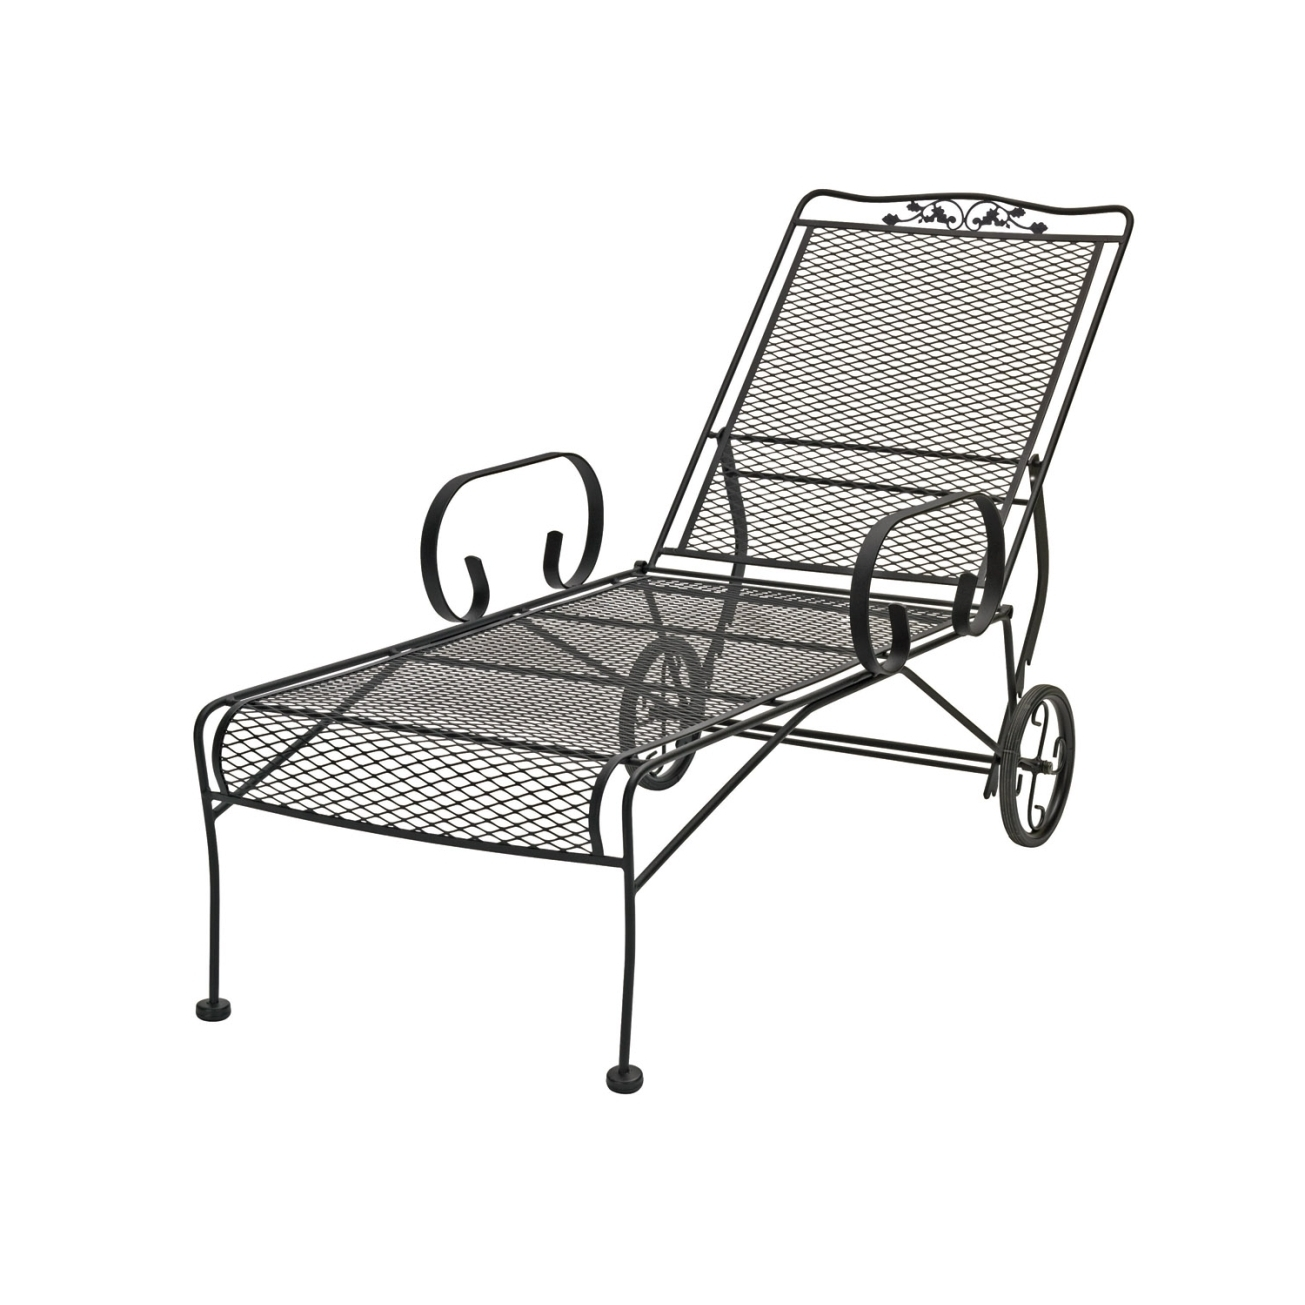 Lounge Chair : Discount Outdoor Furniture Rolston Patio Furniture With Popular Plastic Chaise Lounge Chairs For Outdoors (View 1 of 15)